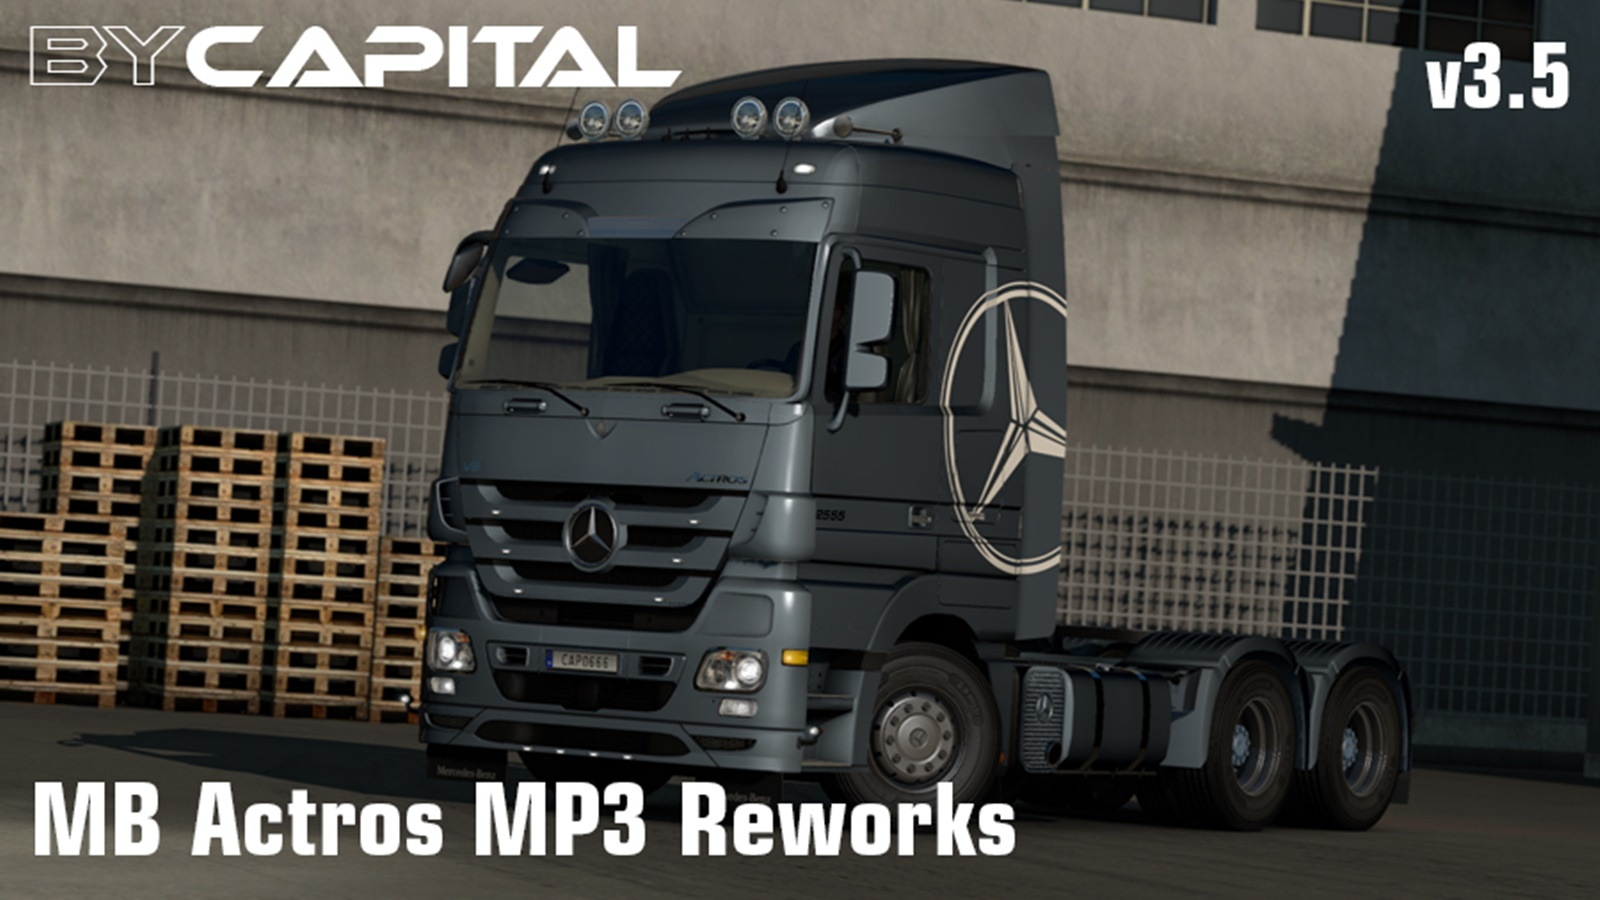 Mercedes Actros MP3 Reworks v3.5 ByCapital